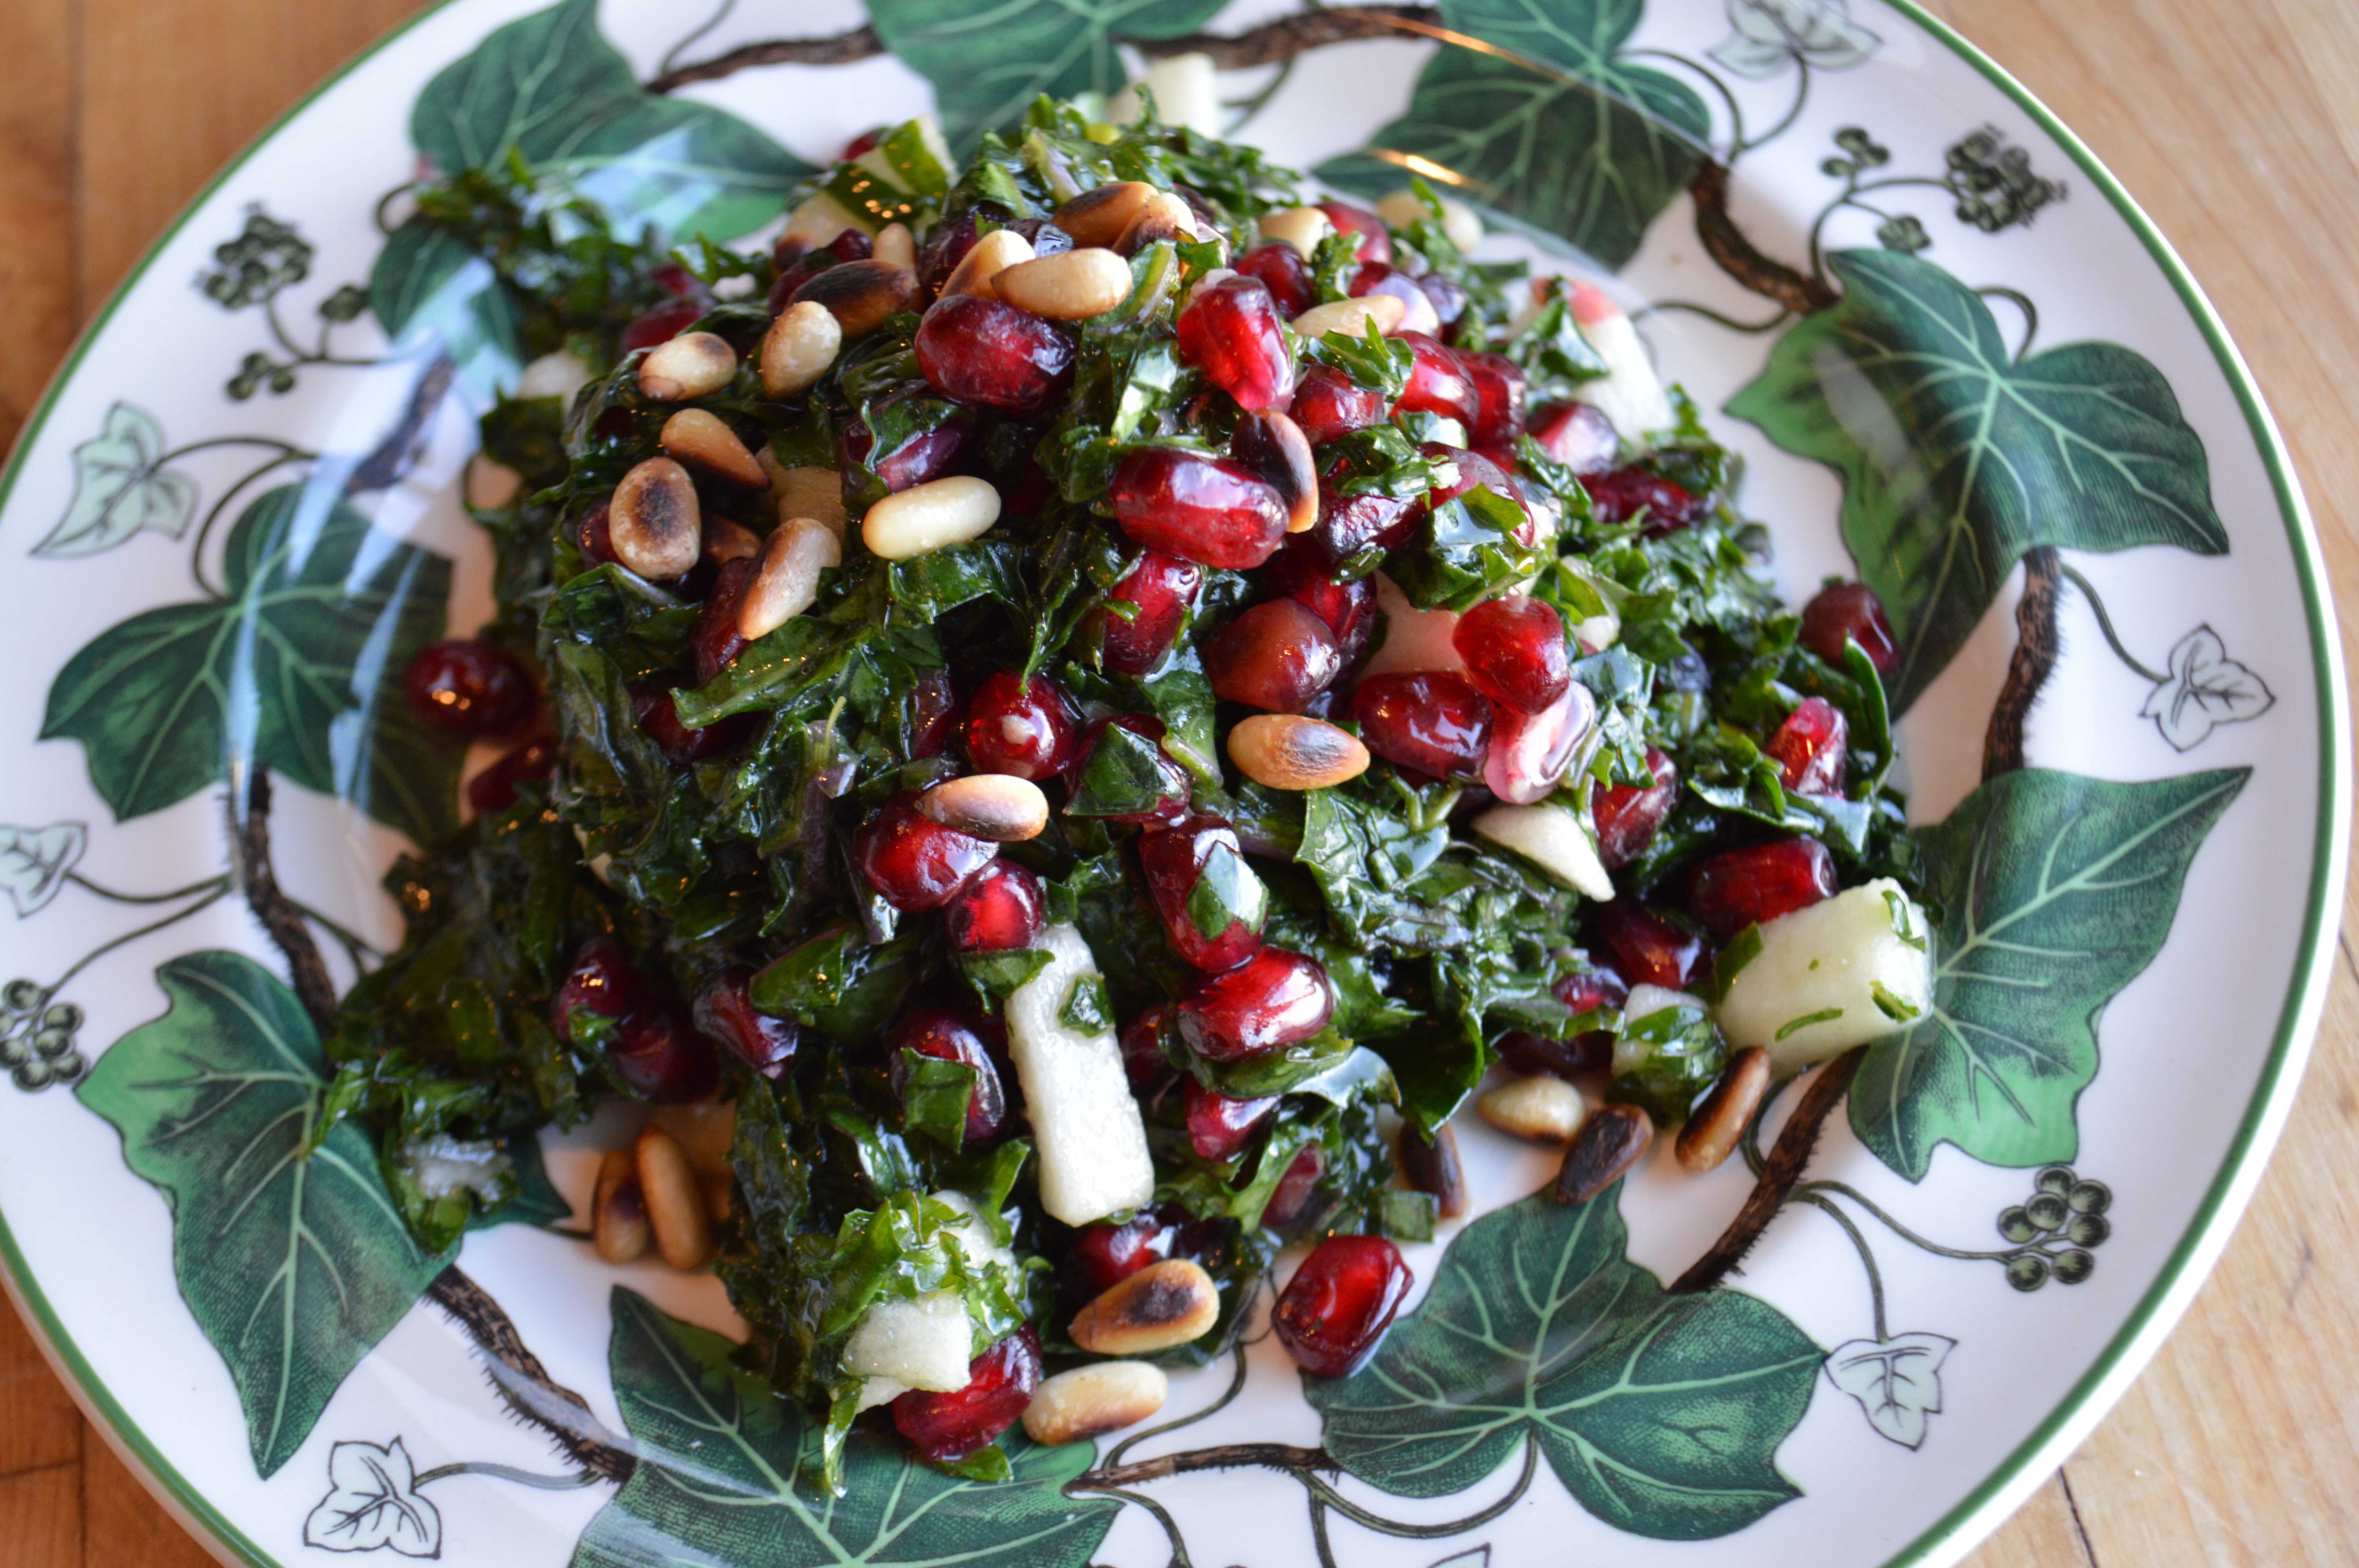 Kale Salad with Pomegranate Seeds and Apples